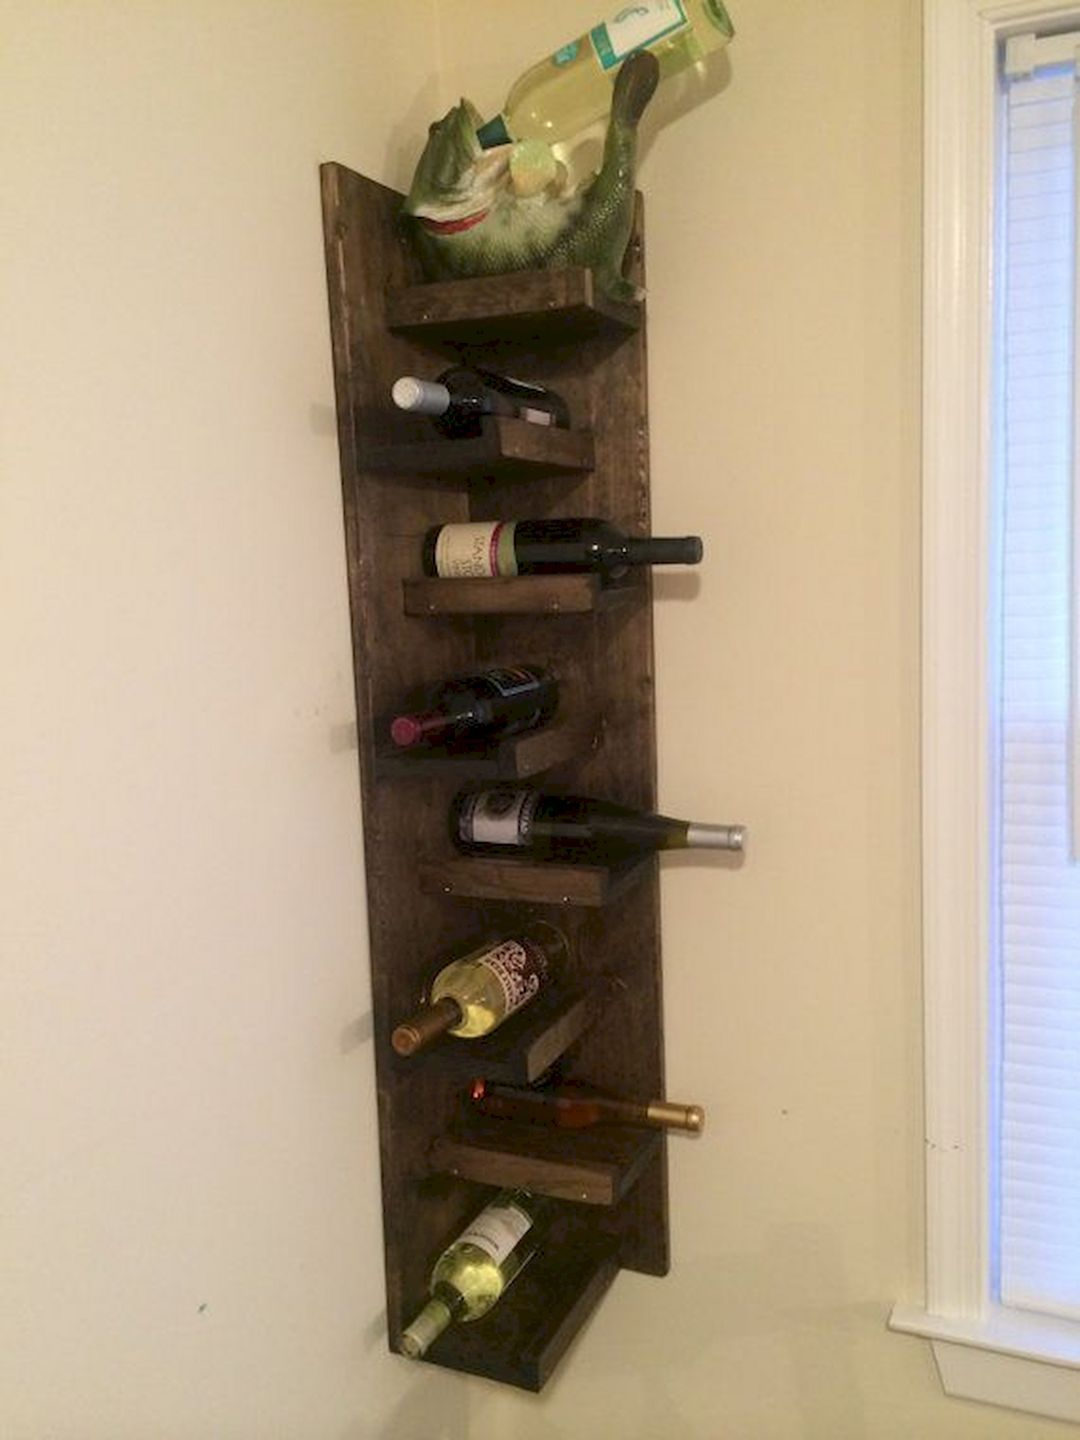 20 Gorgeous Small Corner Wine Cabinet Ideas For Home Look More Beautiful Wine Rack Wall Corner Wine Cabinet Corner Wine Rack